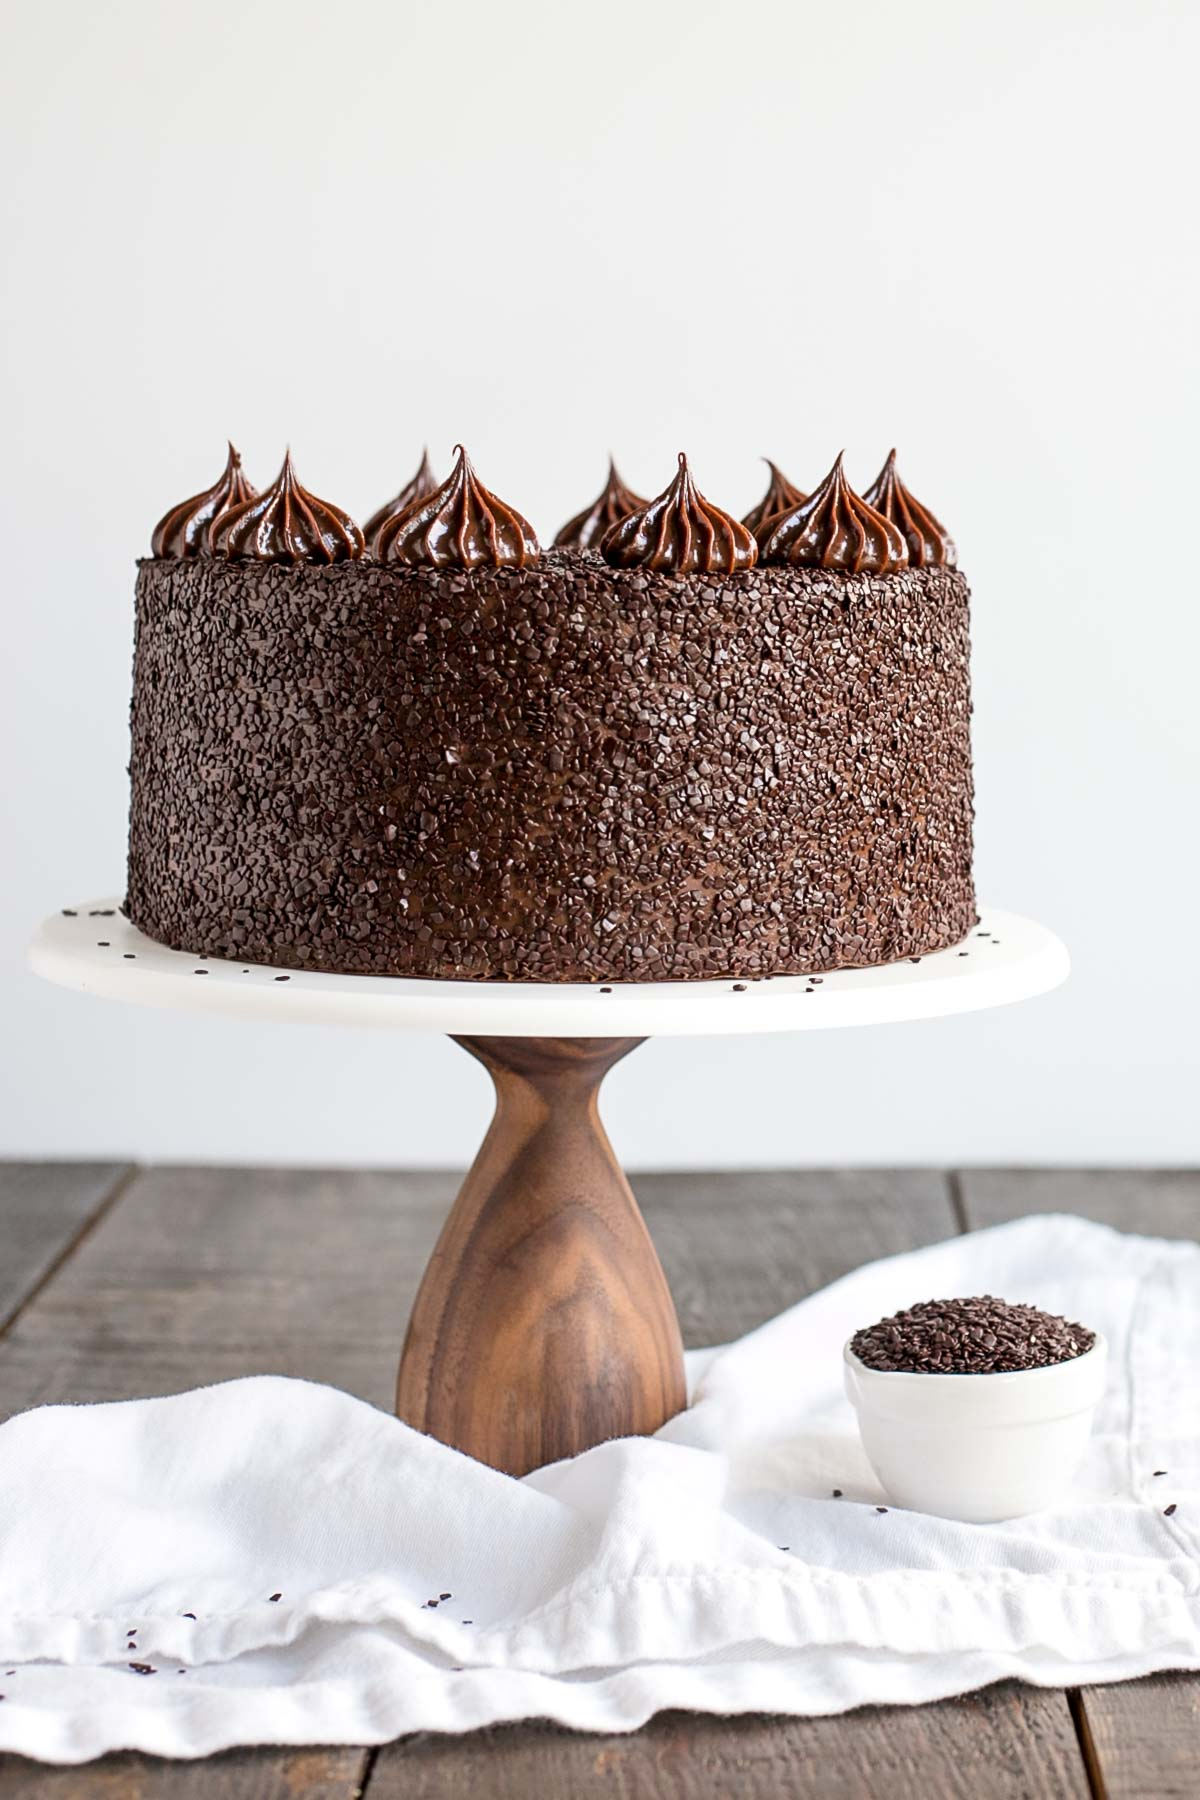 Chocolate cake on a white cake stand.